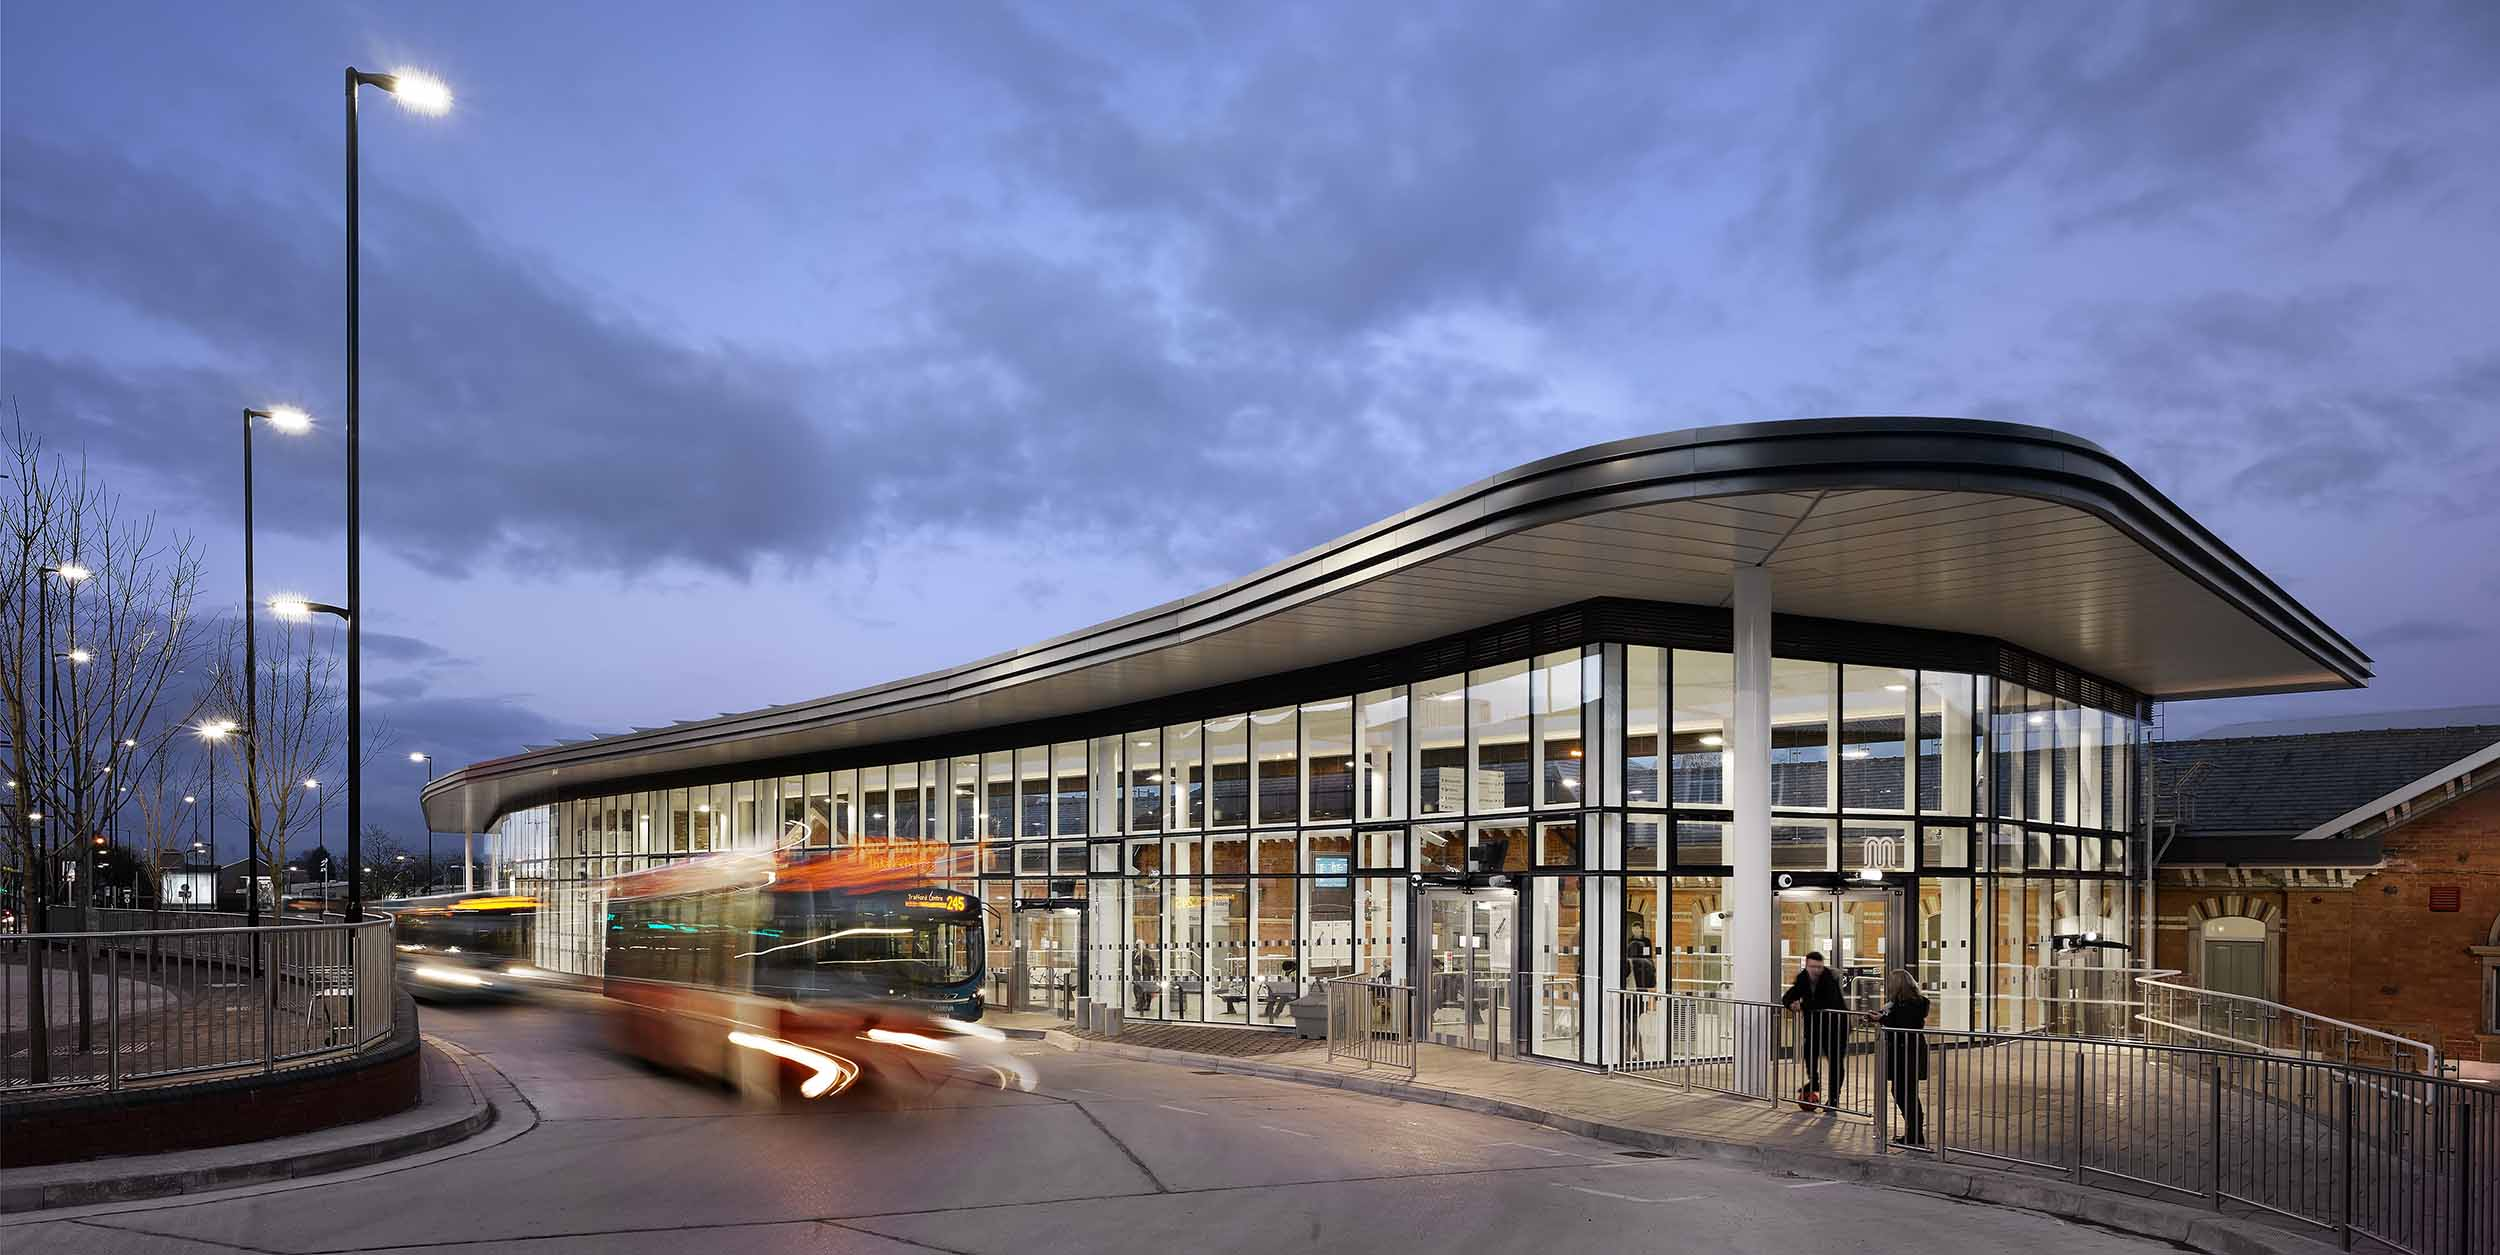 Building: Altrincham Bus Station Location: Altrincham, Greater Manchester Architect: AHR